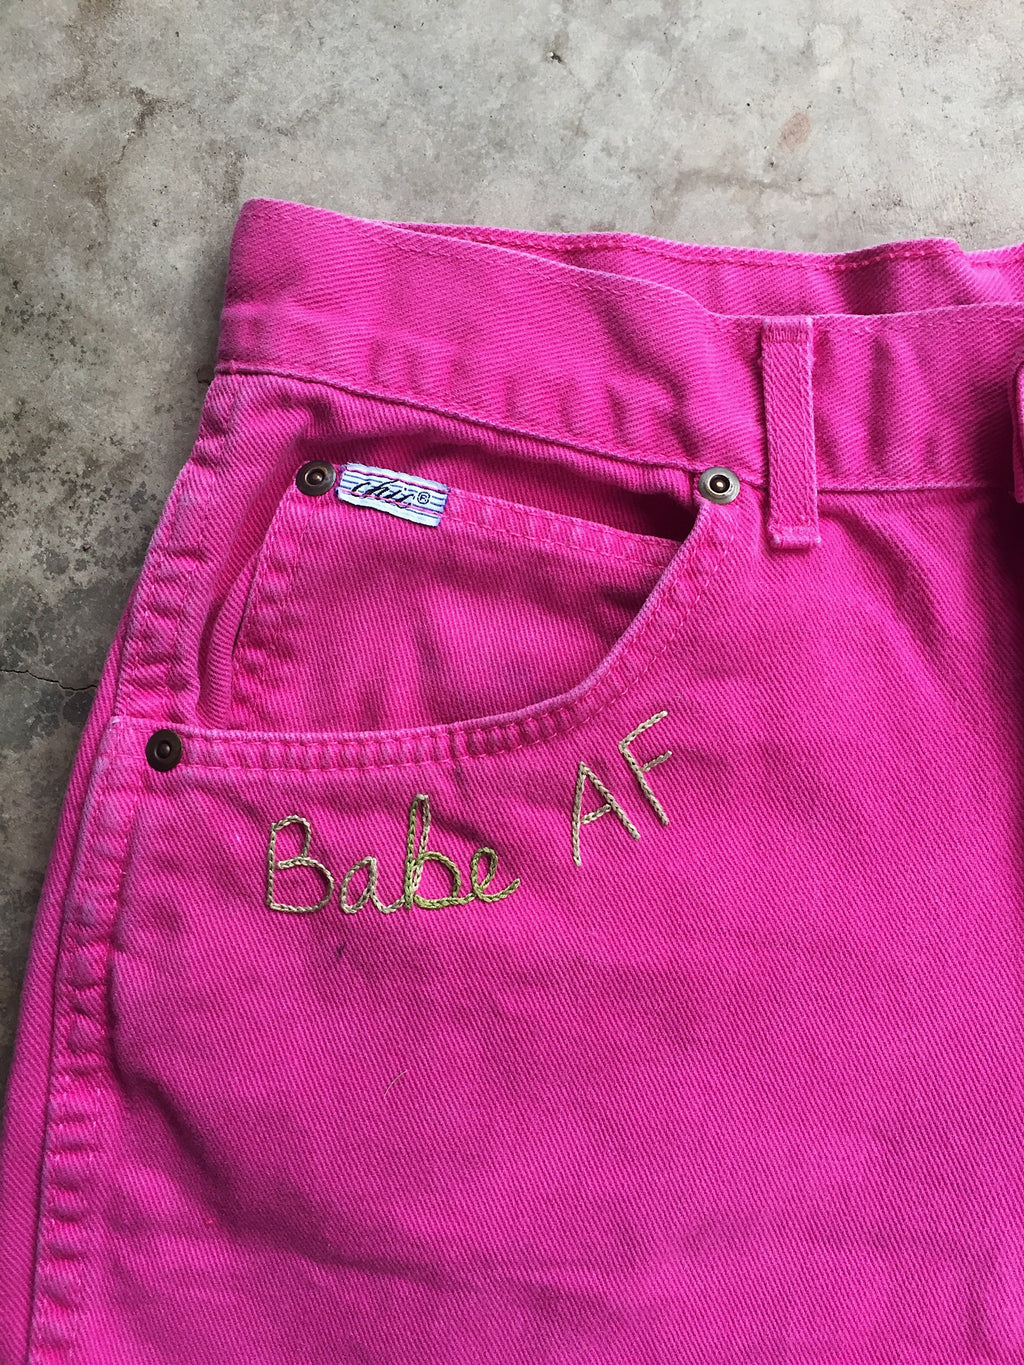 Pink Chic Cutoffs with BabeAF Embroidery. Sz 28